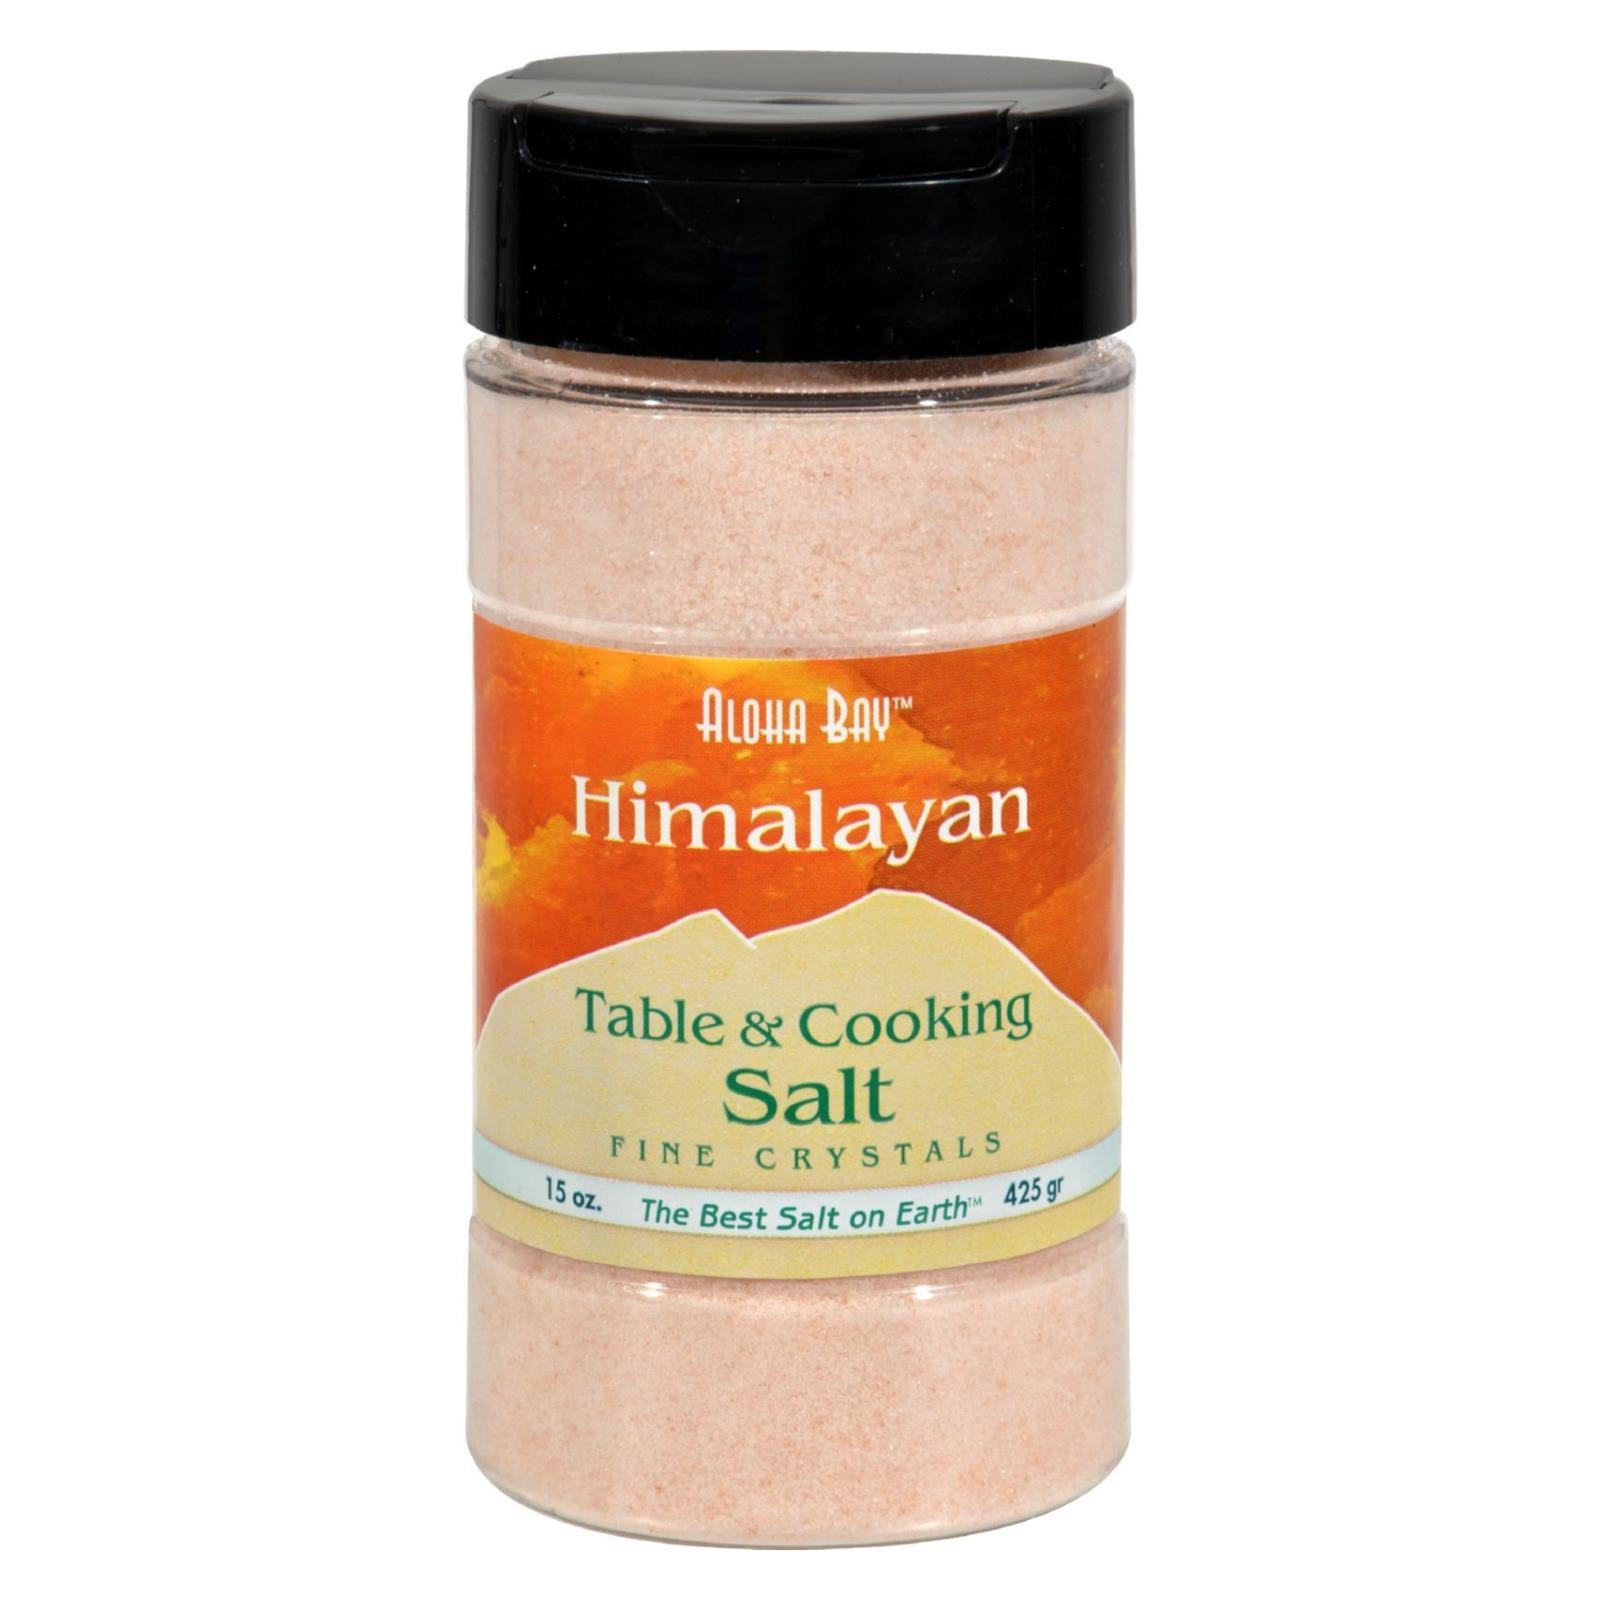 Buy Himalayan Table And Cooking Salt Fine Crystals - 15 oz - Salt, Spices and Seasonings from Veroeco.com